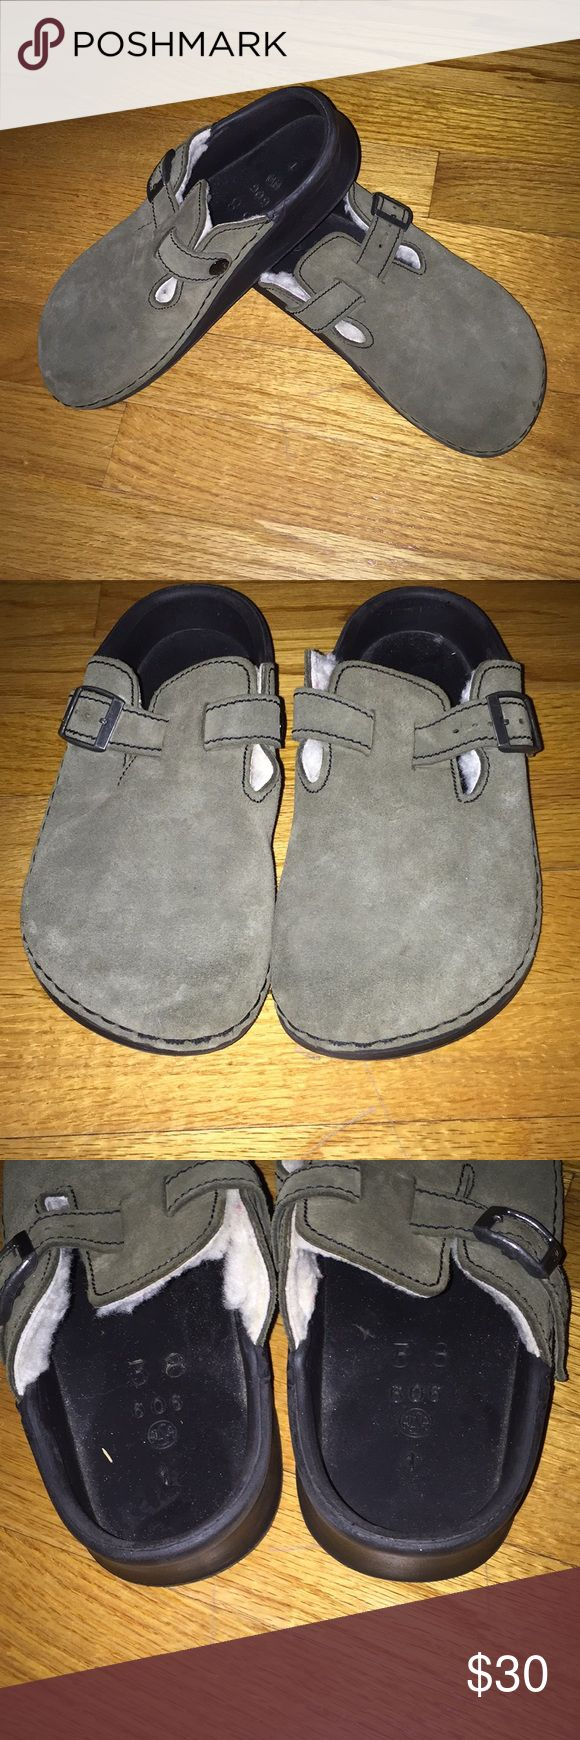 Birkenstock tatami They are army green tatami Birkenstocks. They are missing the fur insoles but replacements can be bought. They can still be worn without insoles because they still have arch support. Birkenstock Shoes Sandals